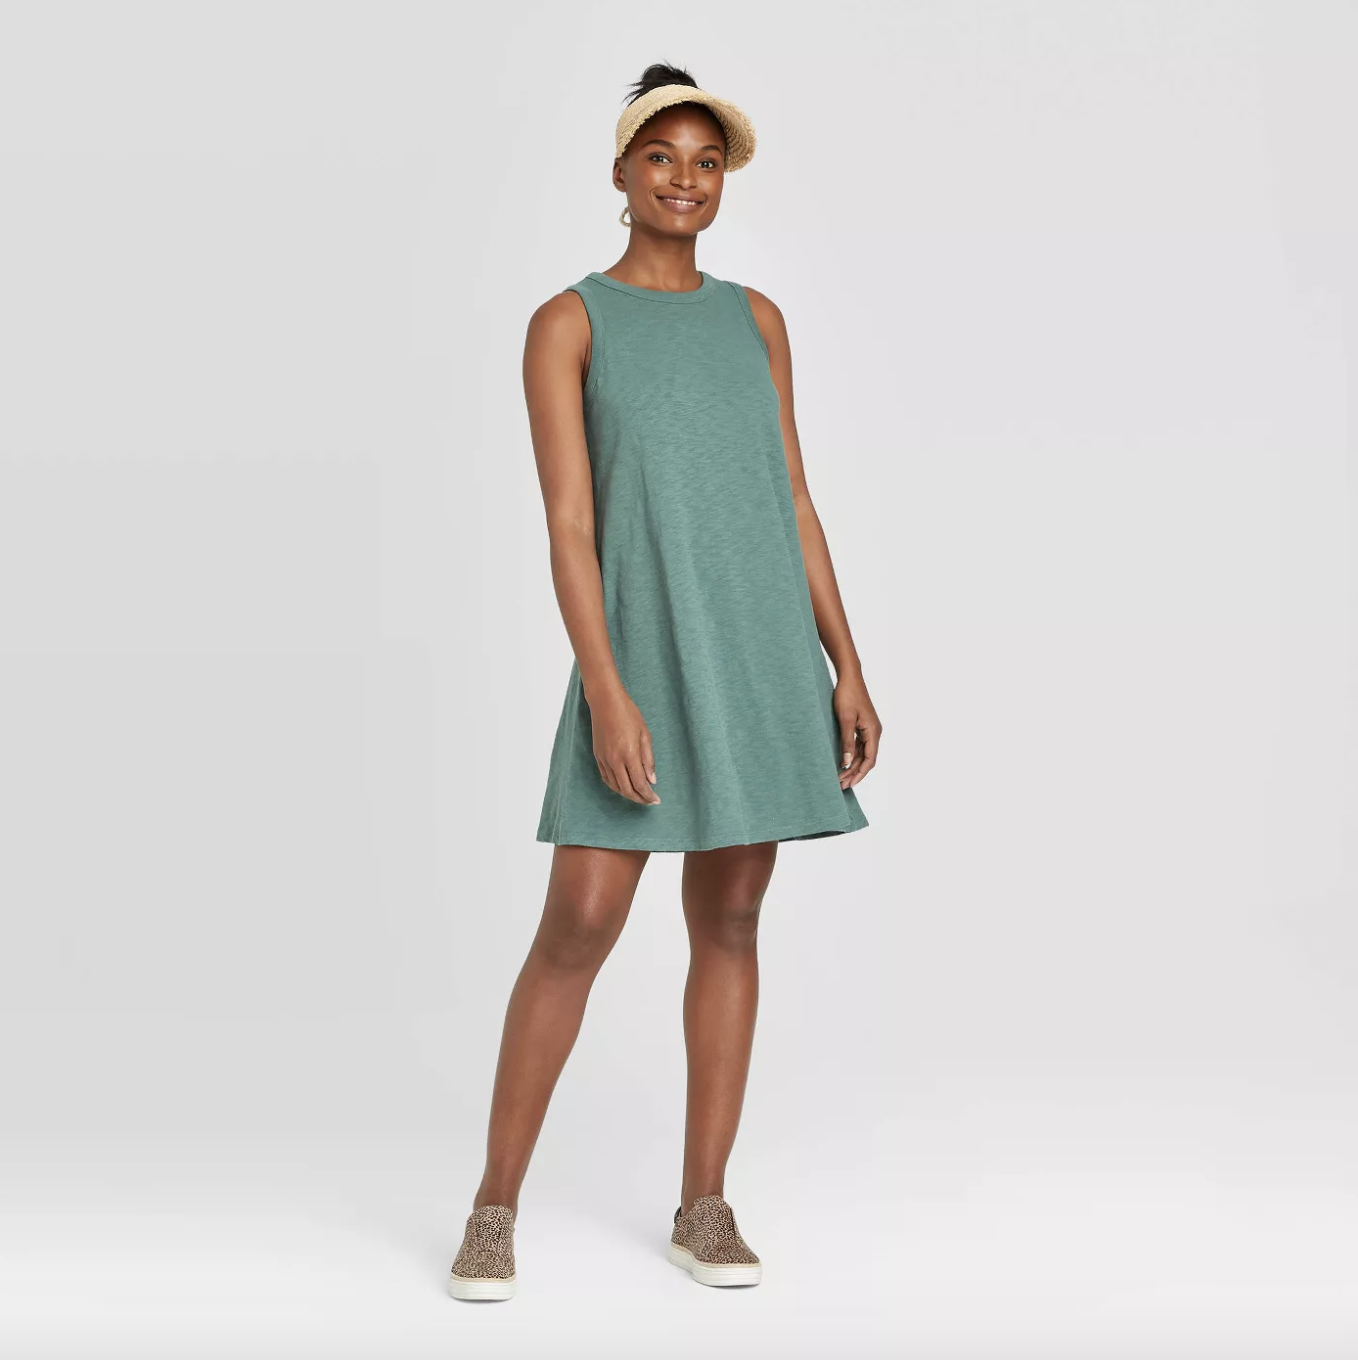 A person wearing a green-colored swing hem dress with tank sleeves that falls just above the knee